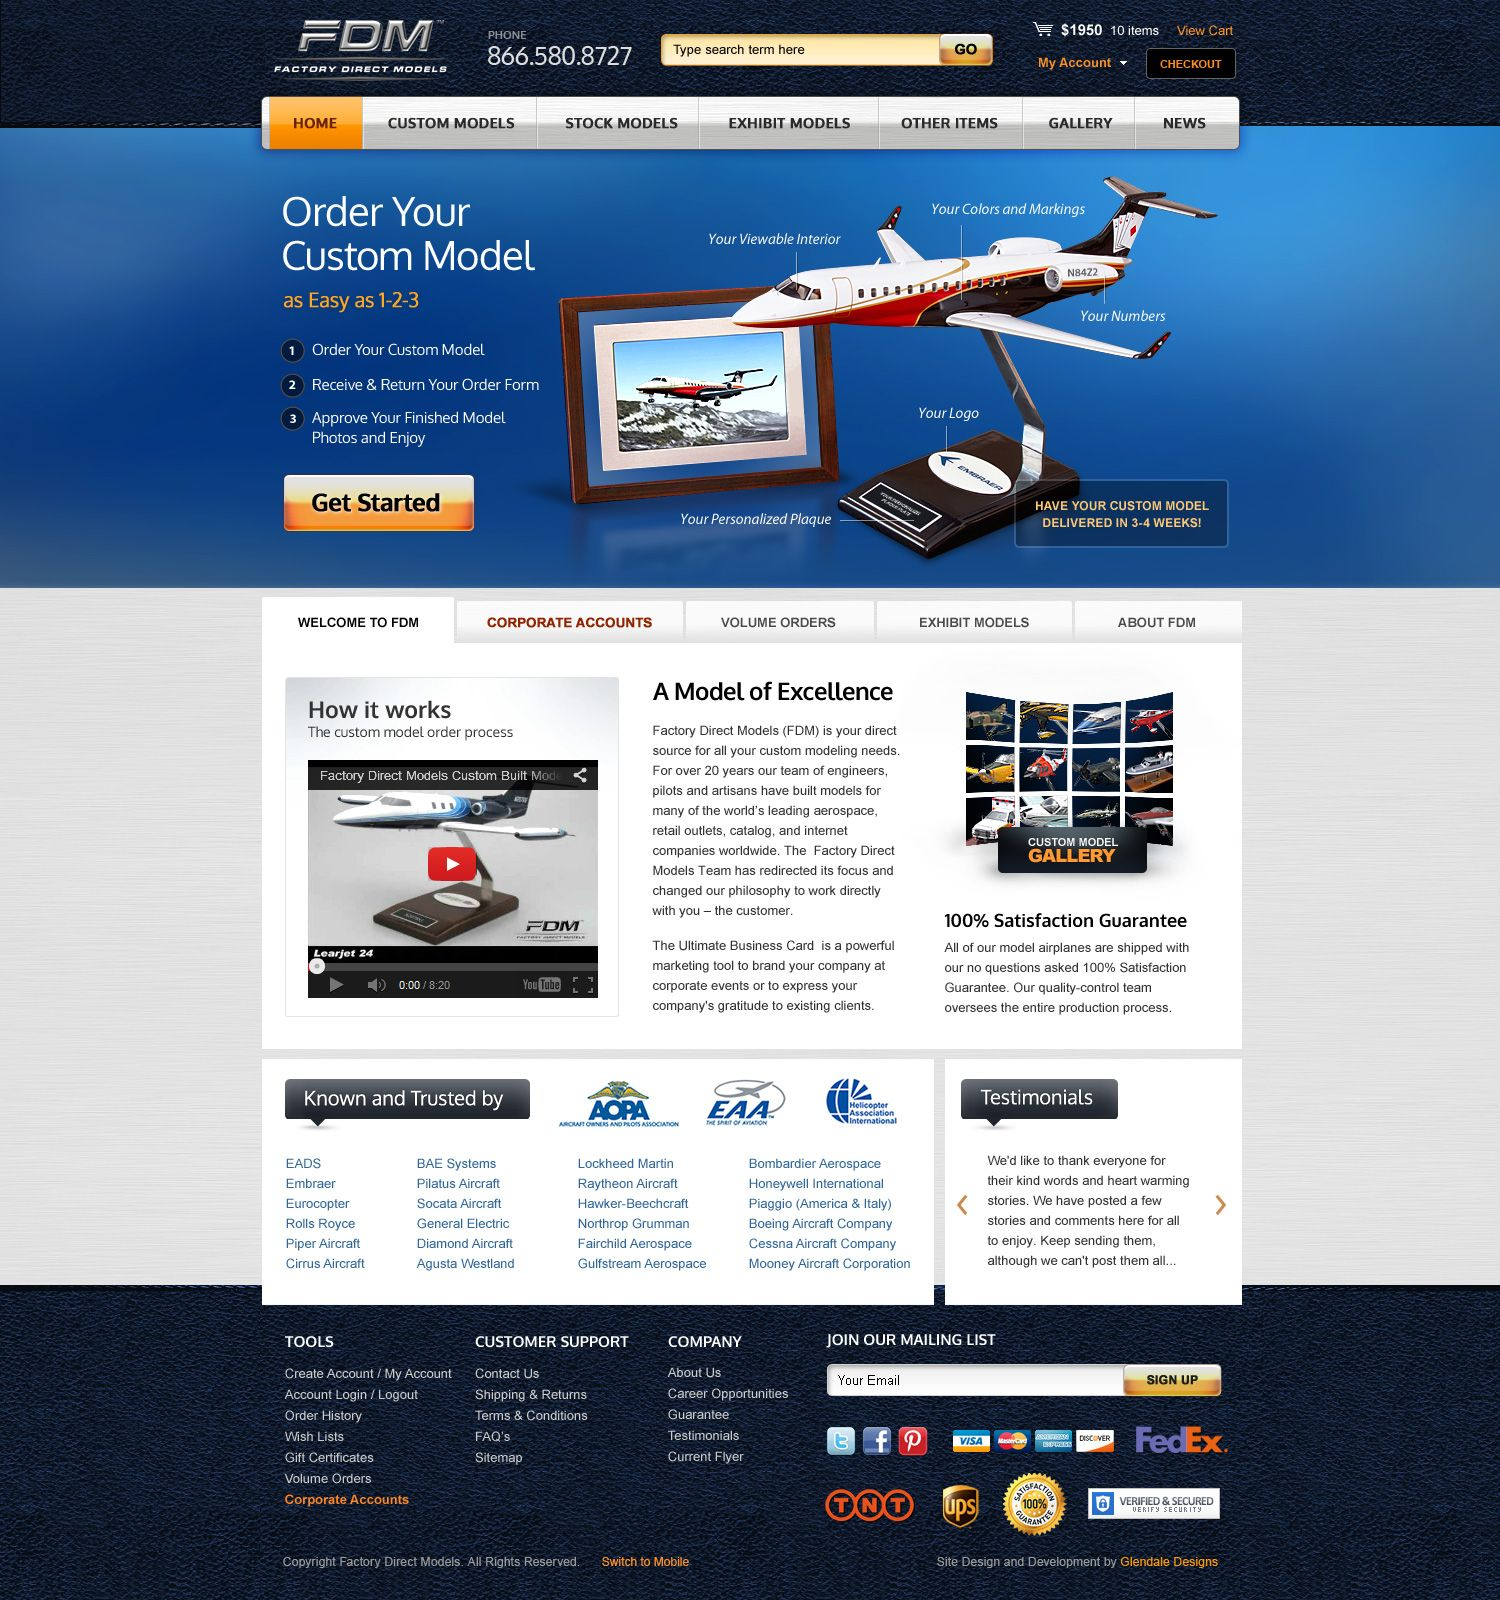 Factory Direct Models Home Page Mockup Approved Miva Merchant Ecommerce Design Customization Ecommerce Design Design Ecommerce